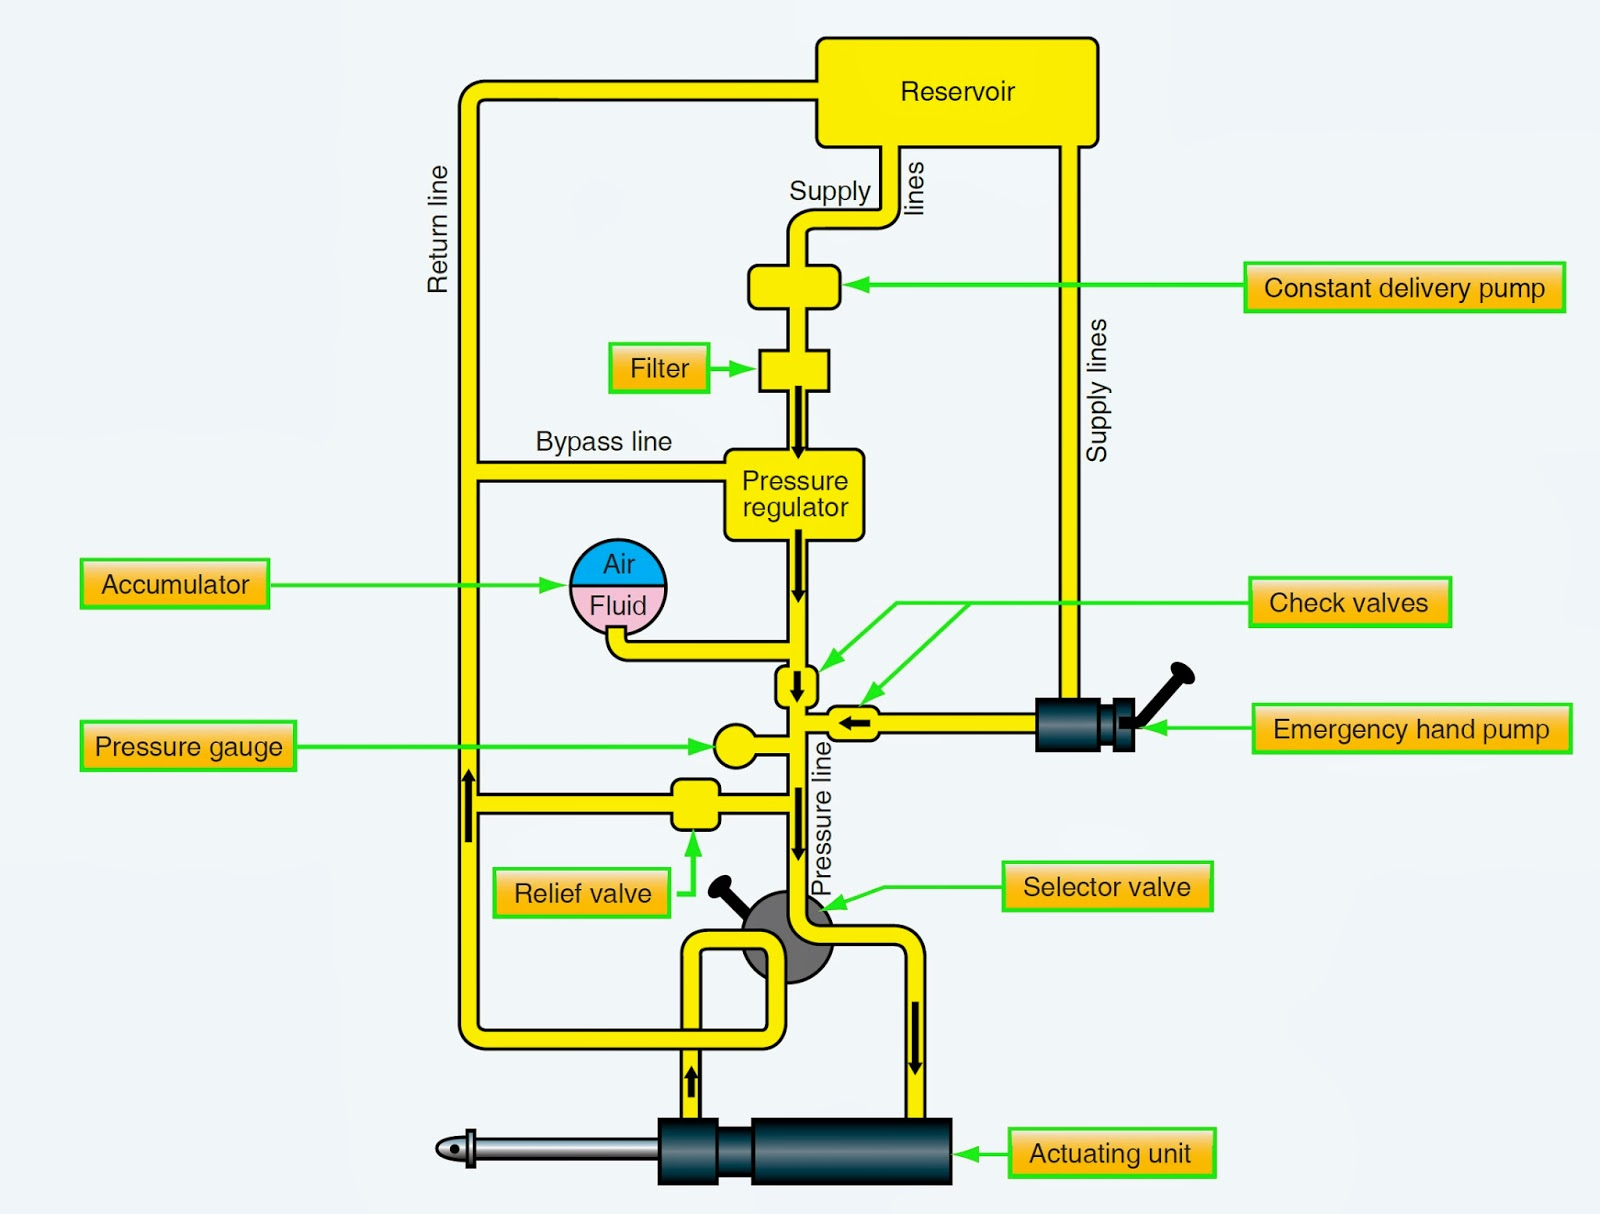 Basic Ups System Diagram Schematics Wiring Diagrams On Automatic Circuit For Home Hydraulic Schematic 40 Network